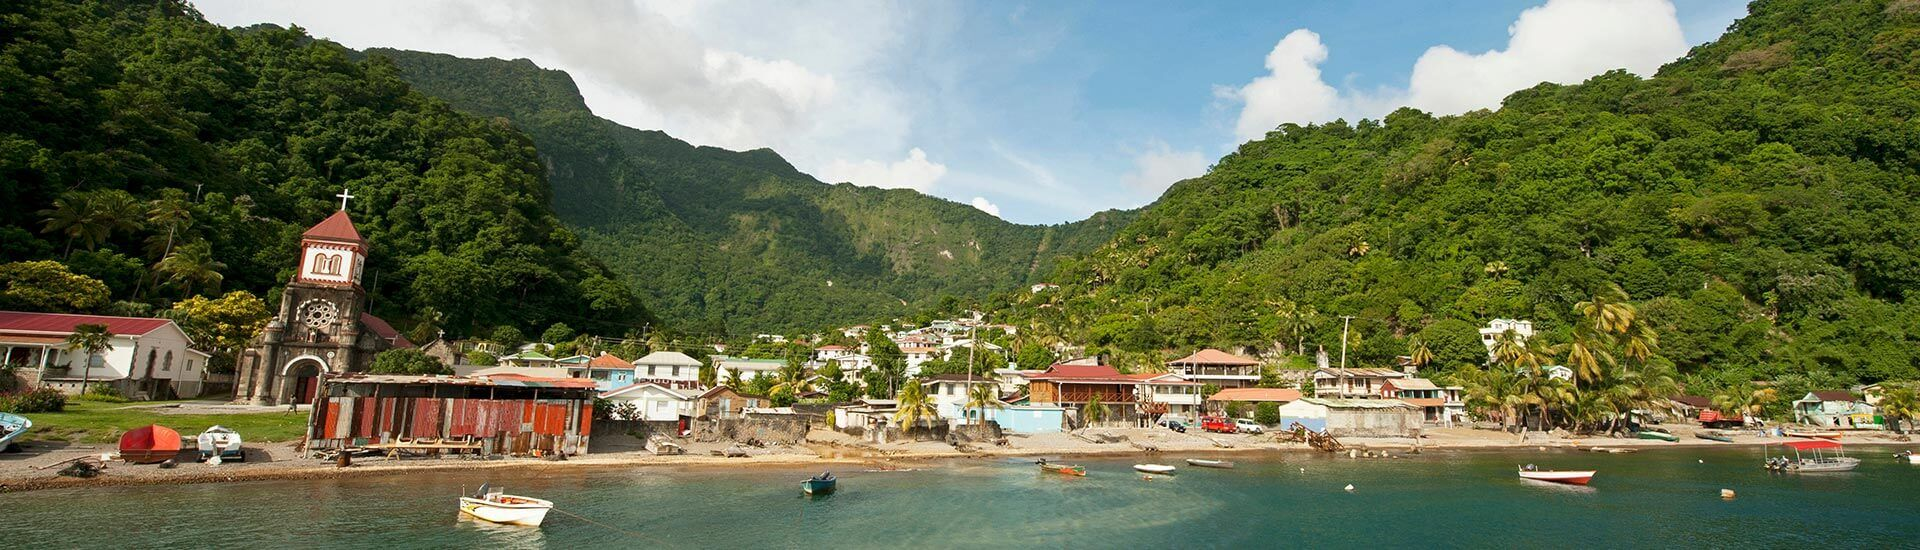 Leave the high-rise beach resorts and crowds behind with a trip to Dominica. This green gem of an island is all about relaxation, eco-adventures and some of the Caribbean's best diving.